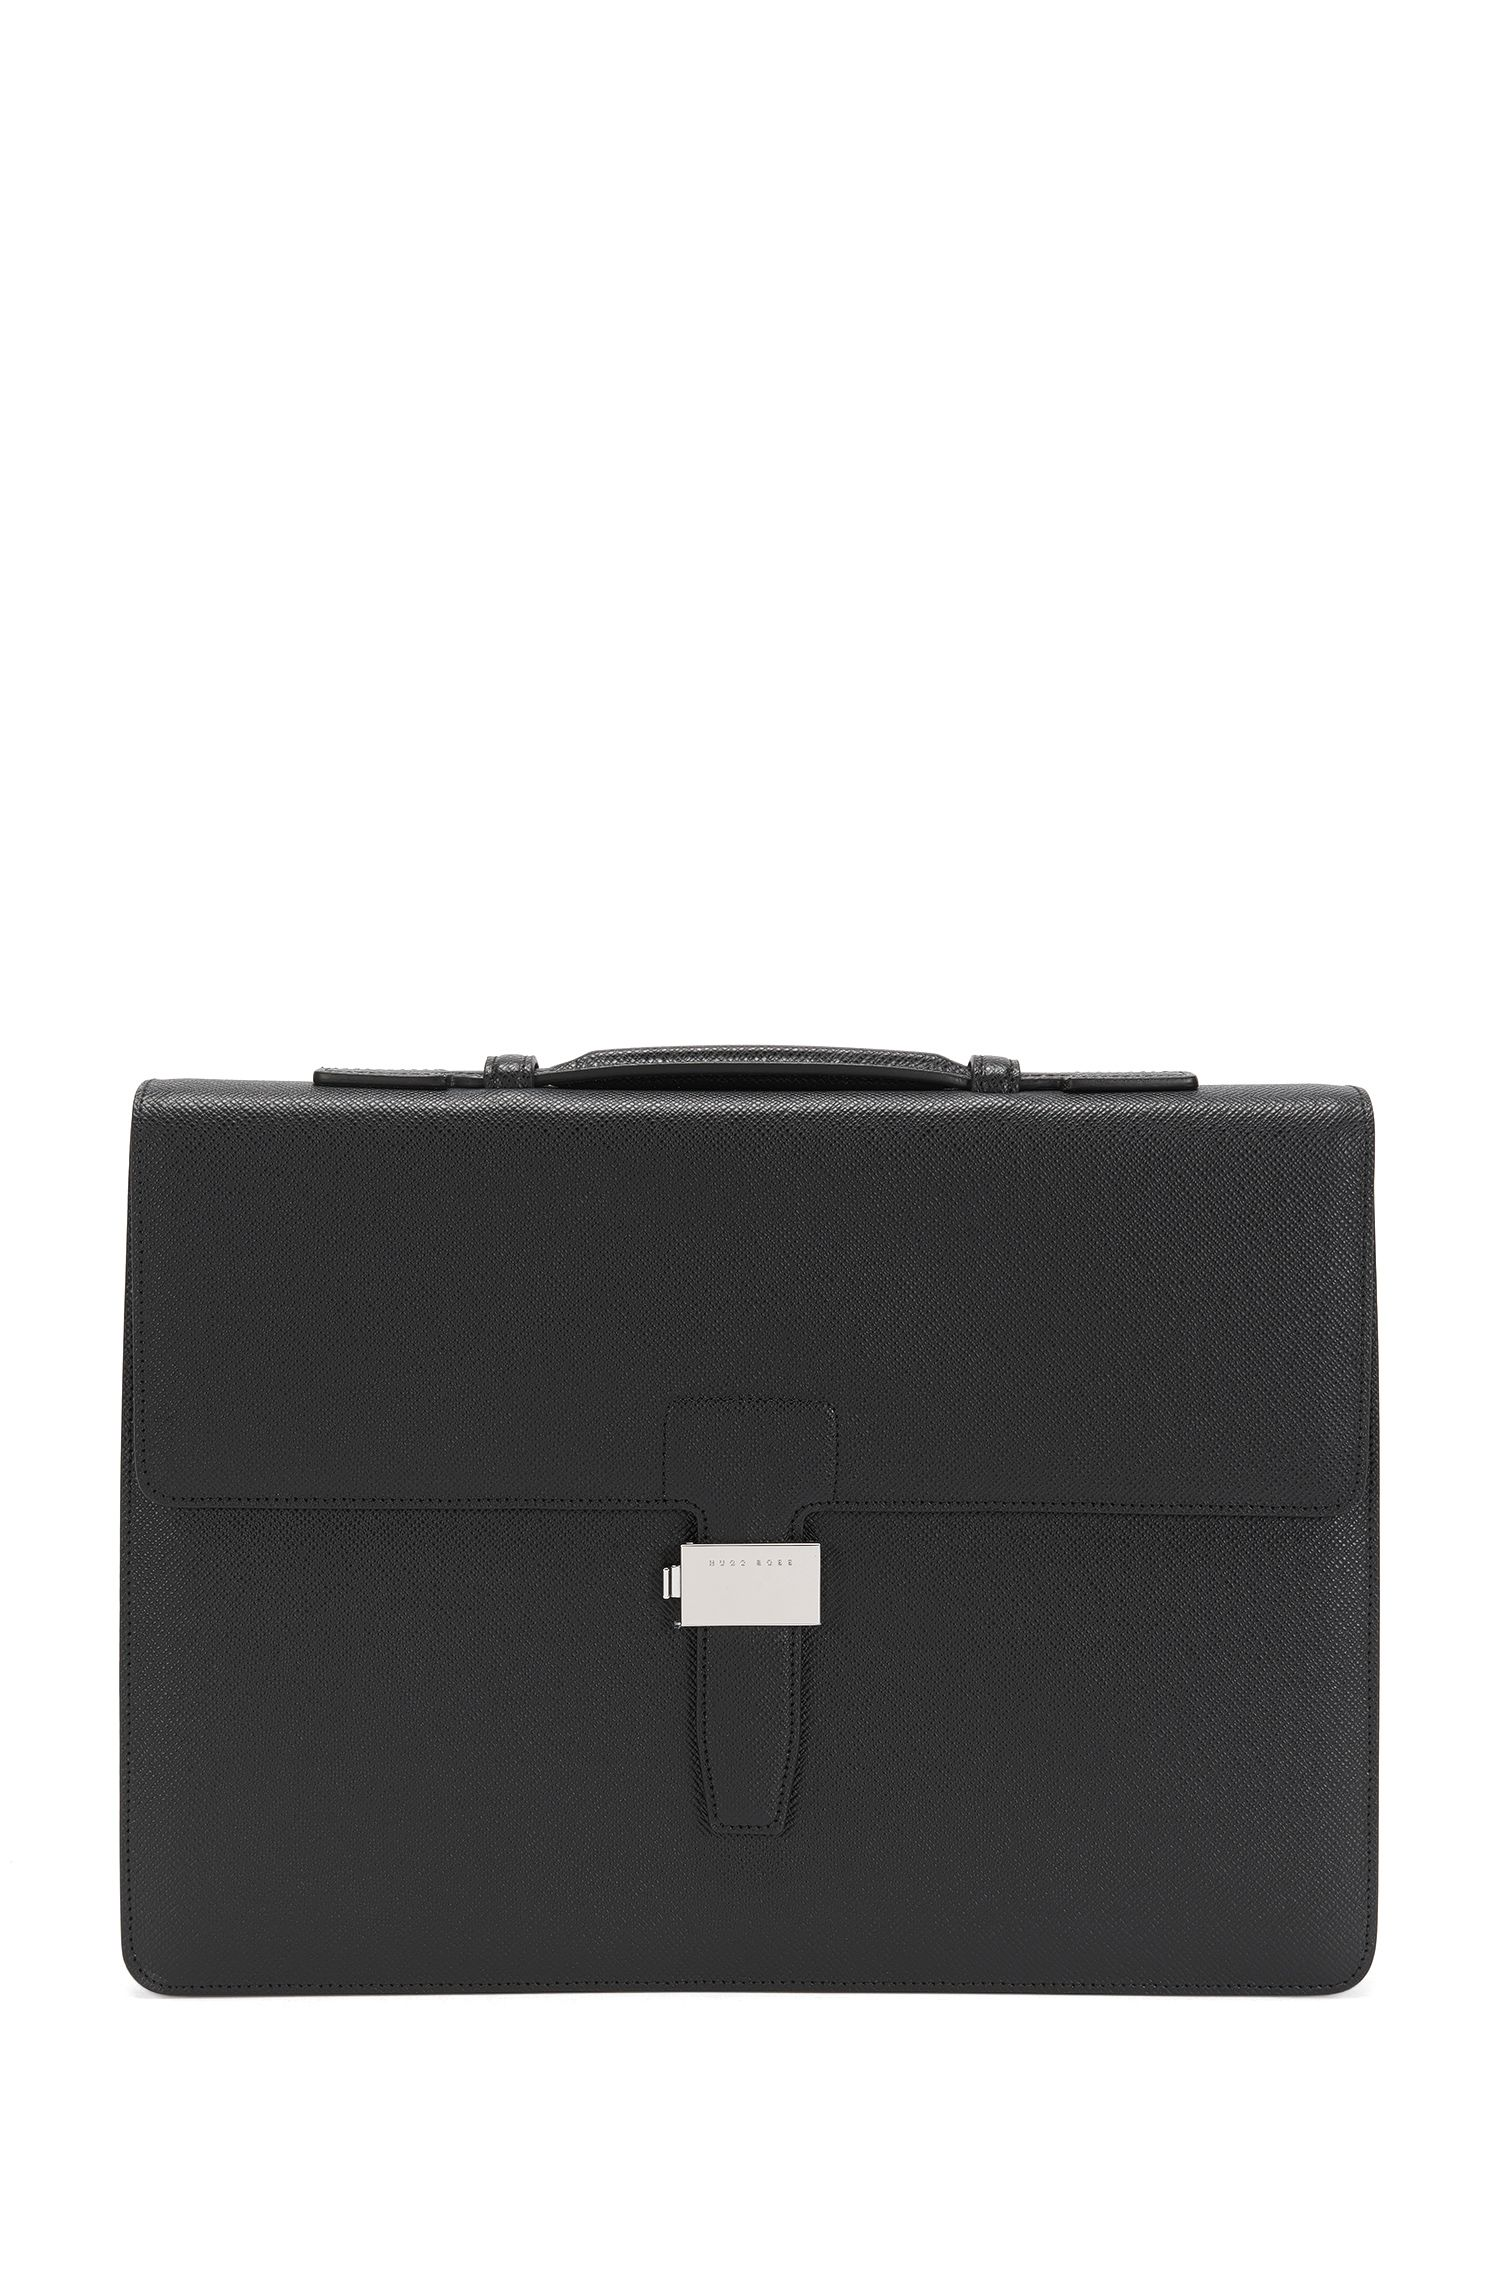 Leather Briefcase | Signature Brief SN